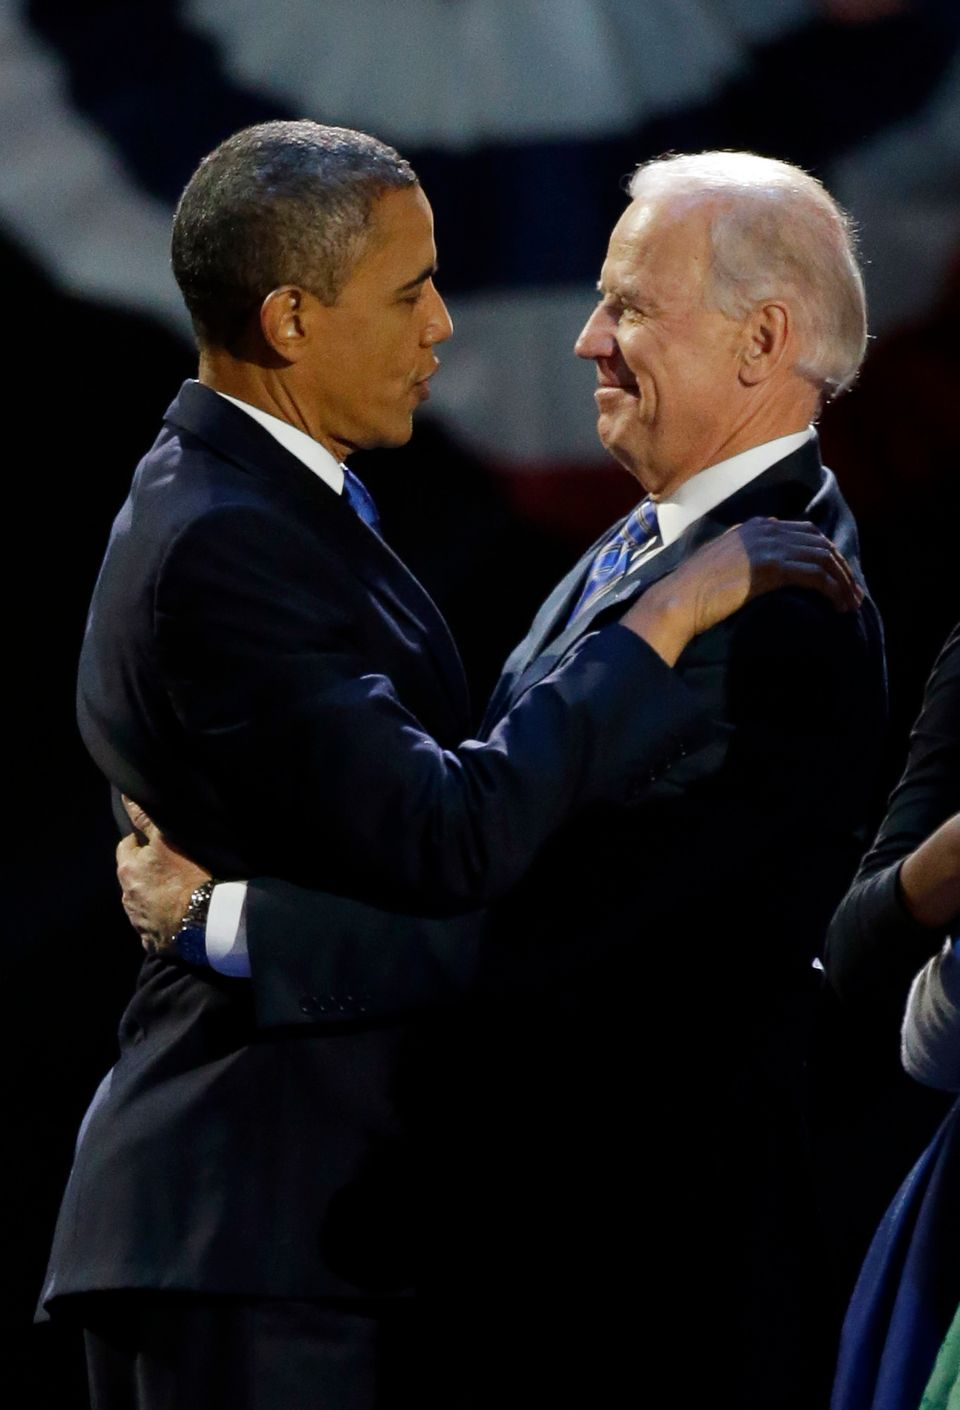 President Barack Obama hugs Vice President Joe Biden after his speech at his election night party Wednesday, Nov. 7, 2012, in